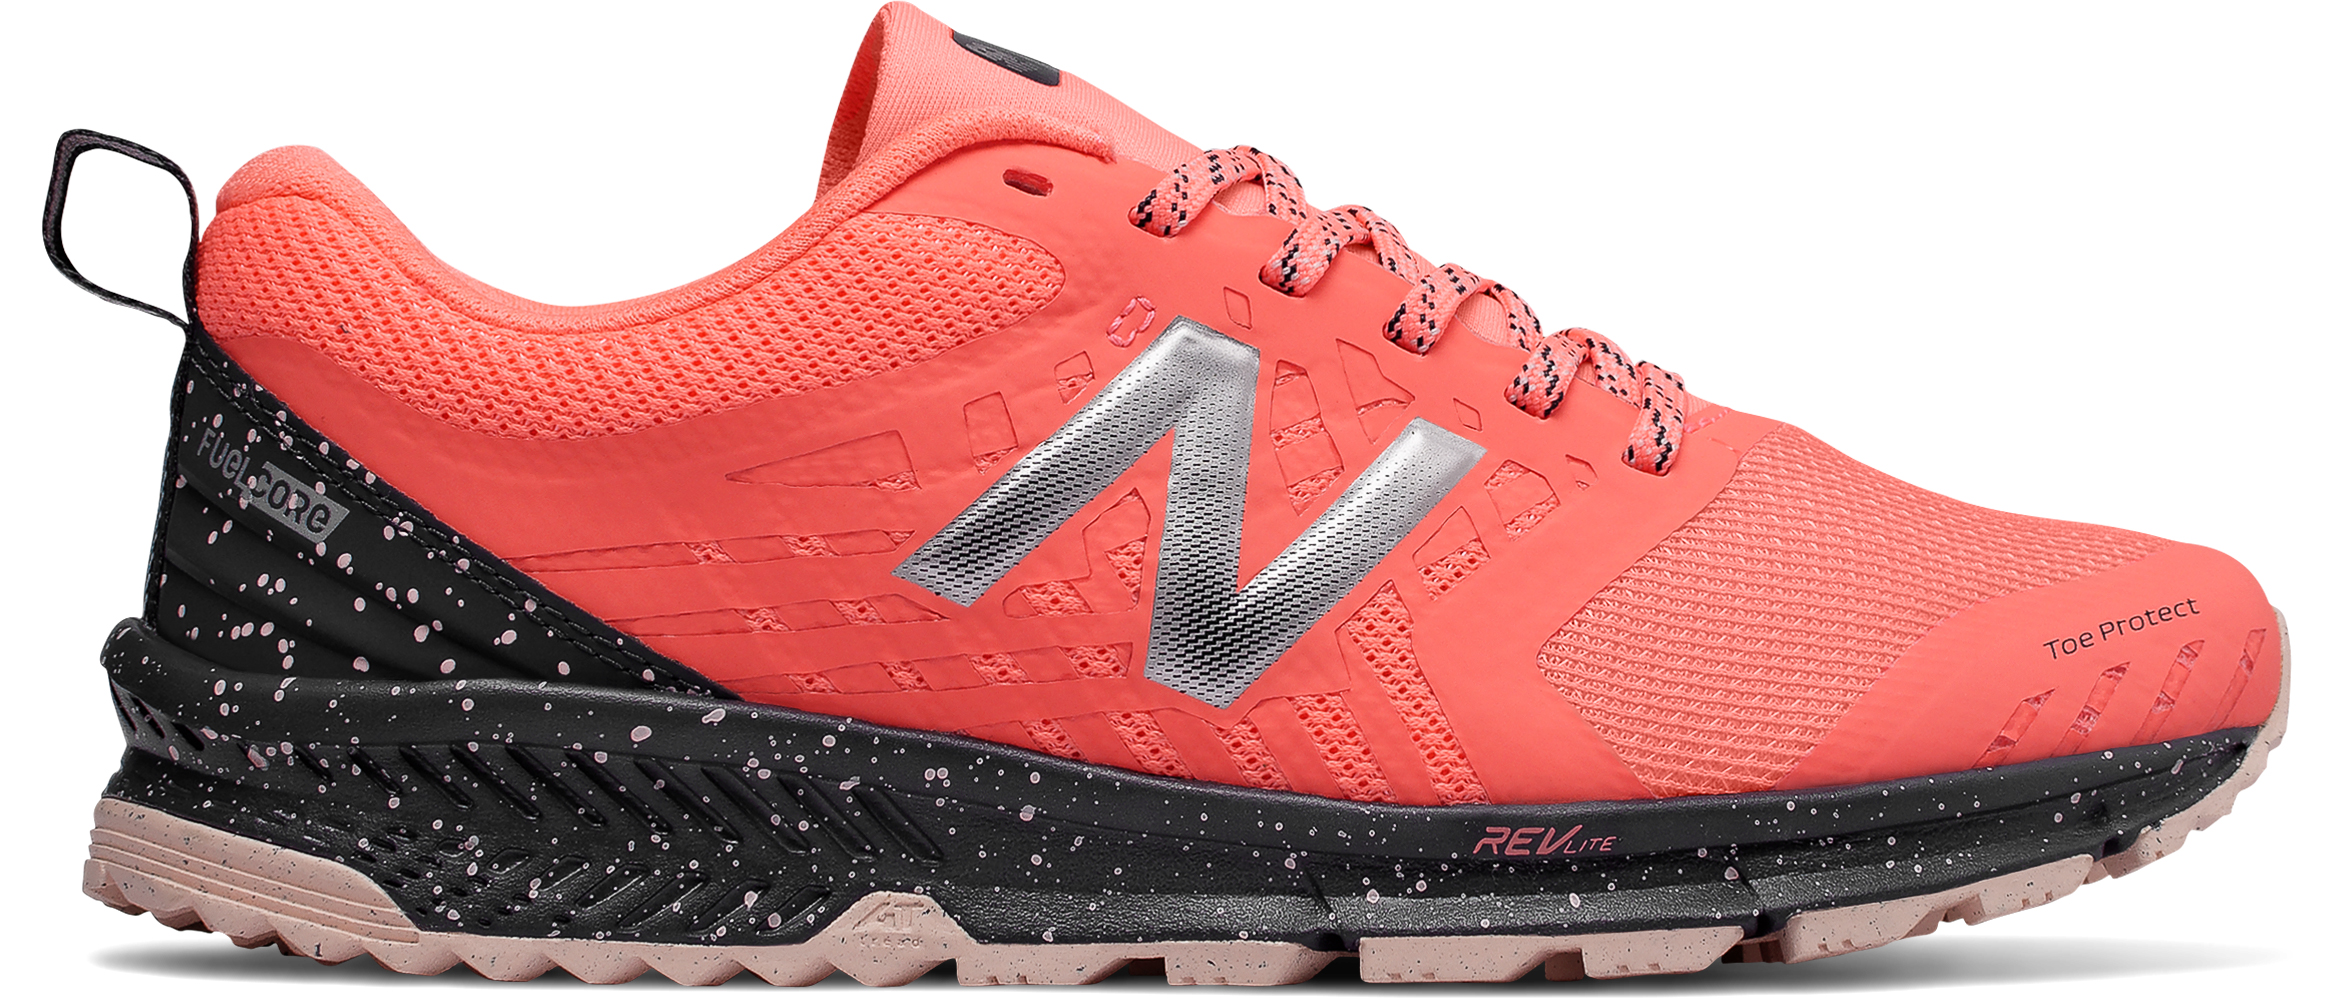 Core Chaussures V1 Women's Nitrel De Trail New Balance Fuel YqaYzS